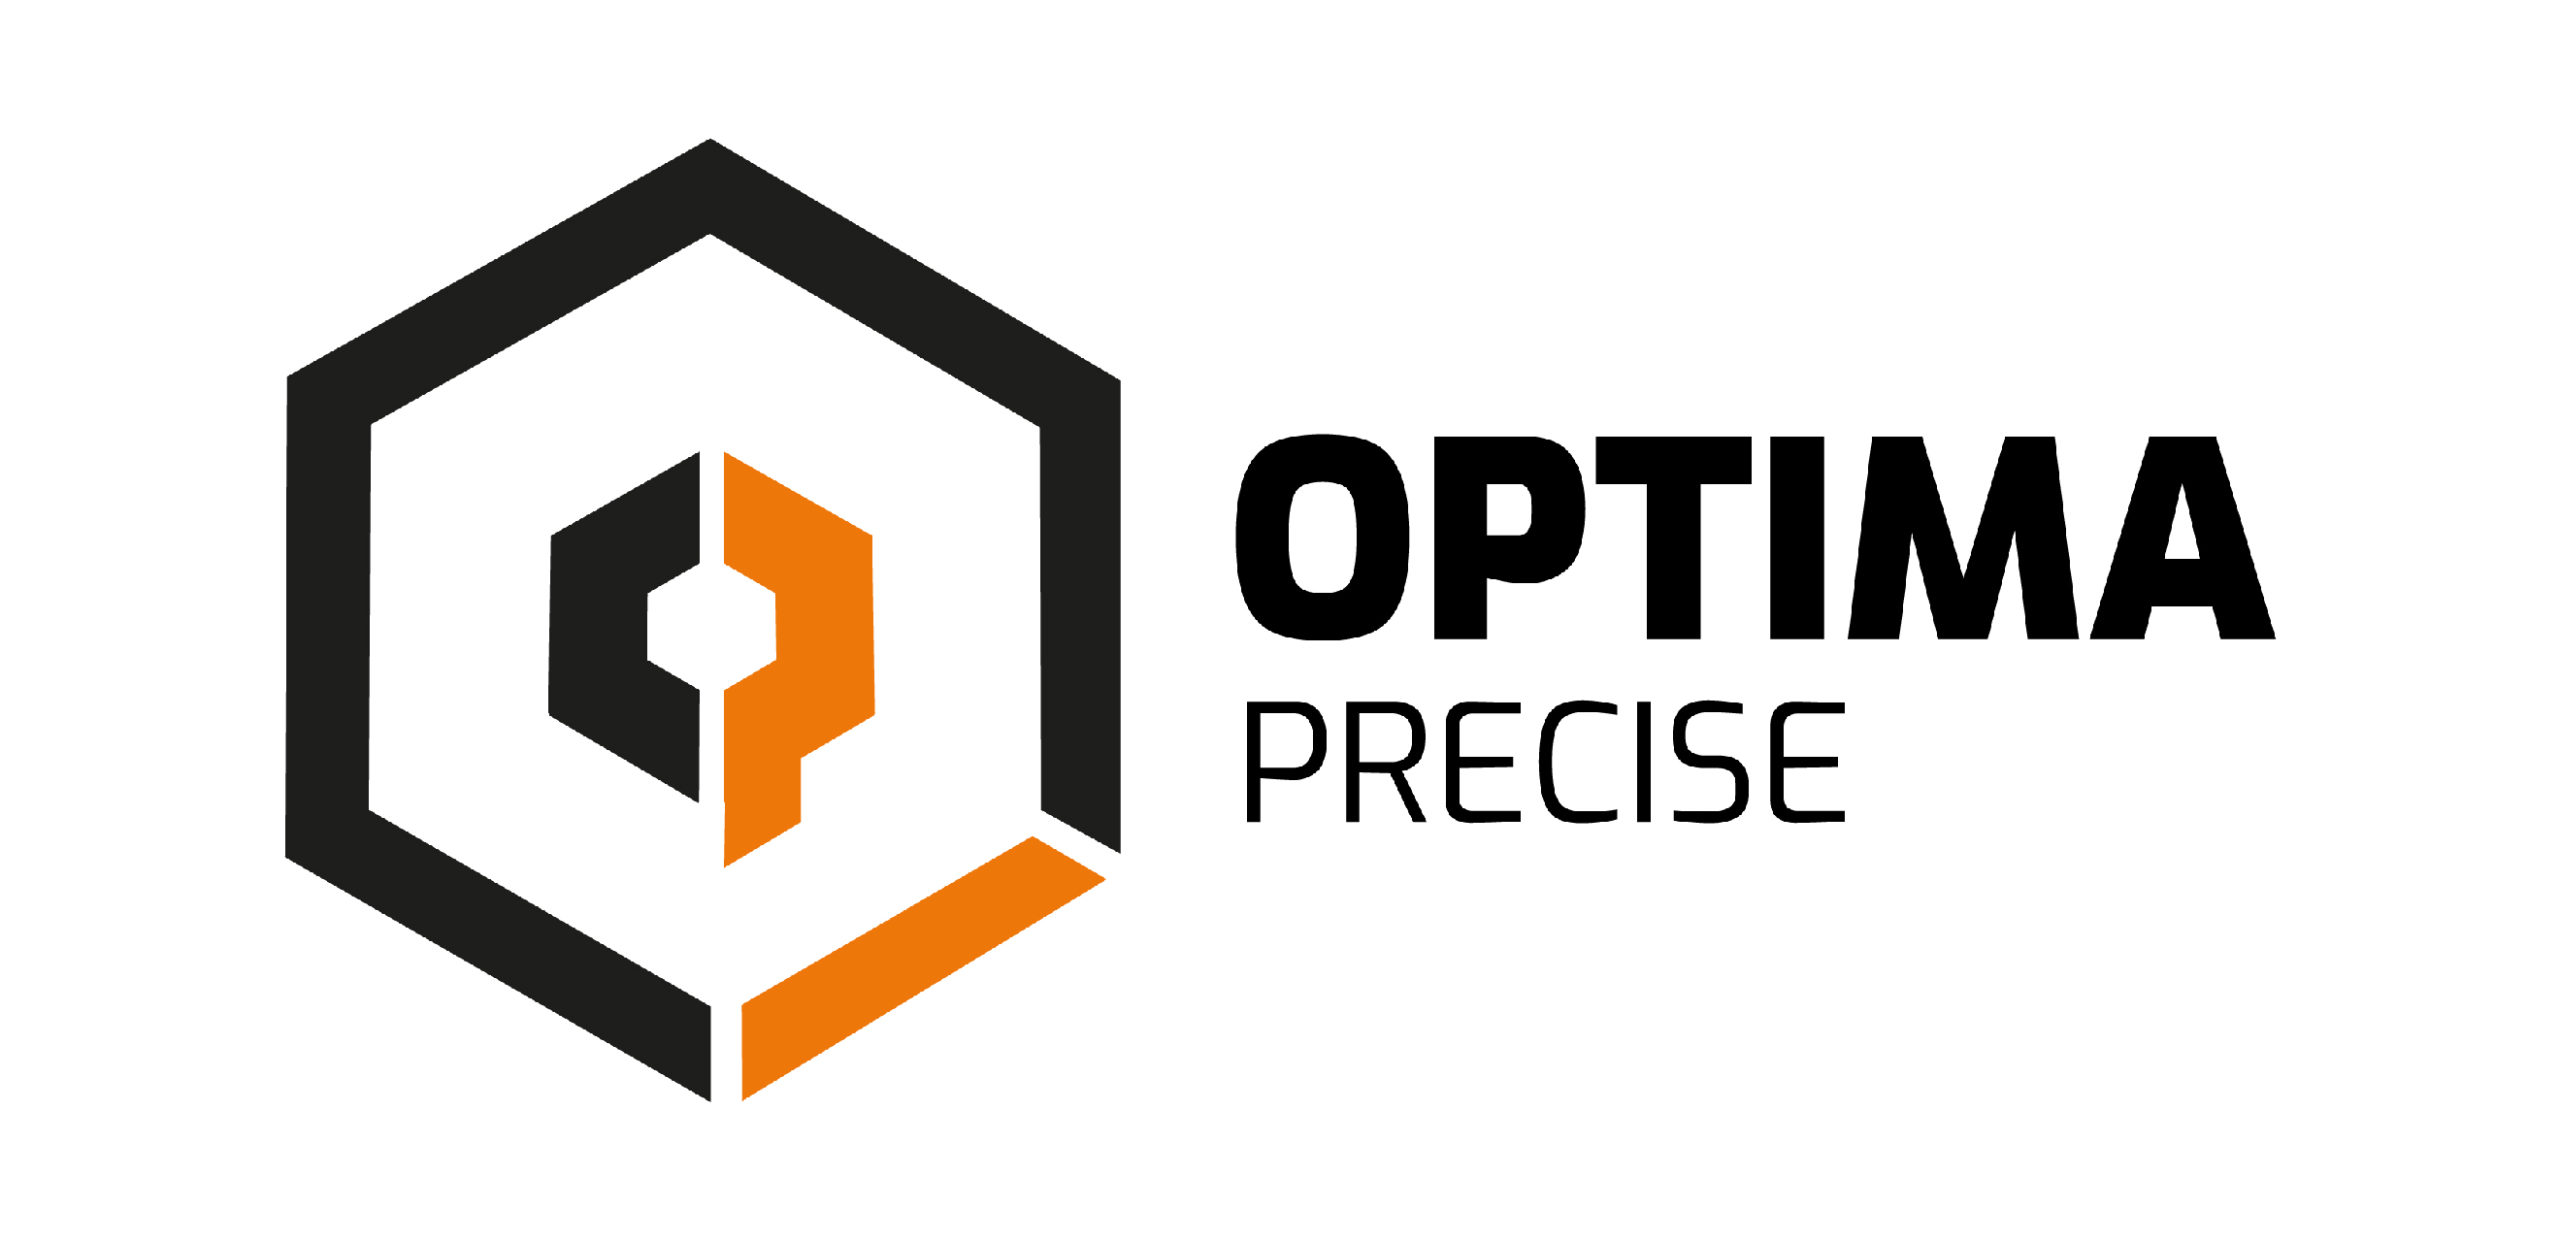 Optimaprecise.cz